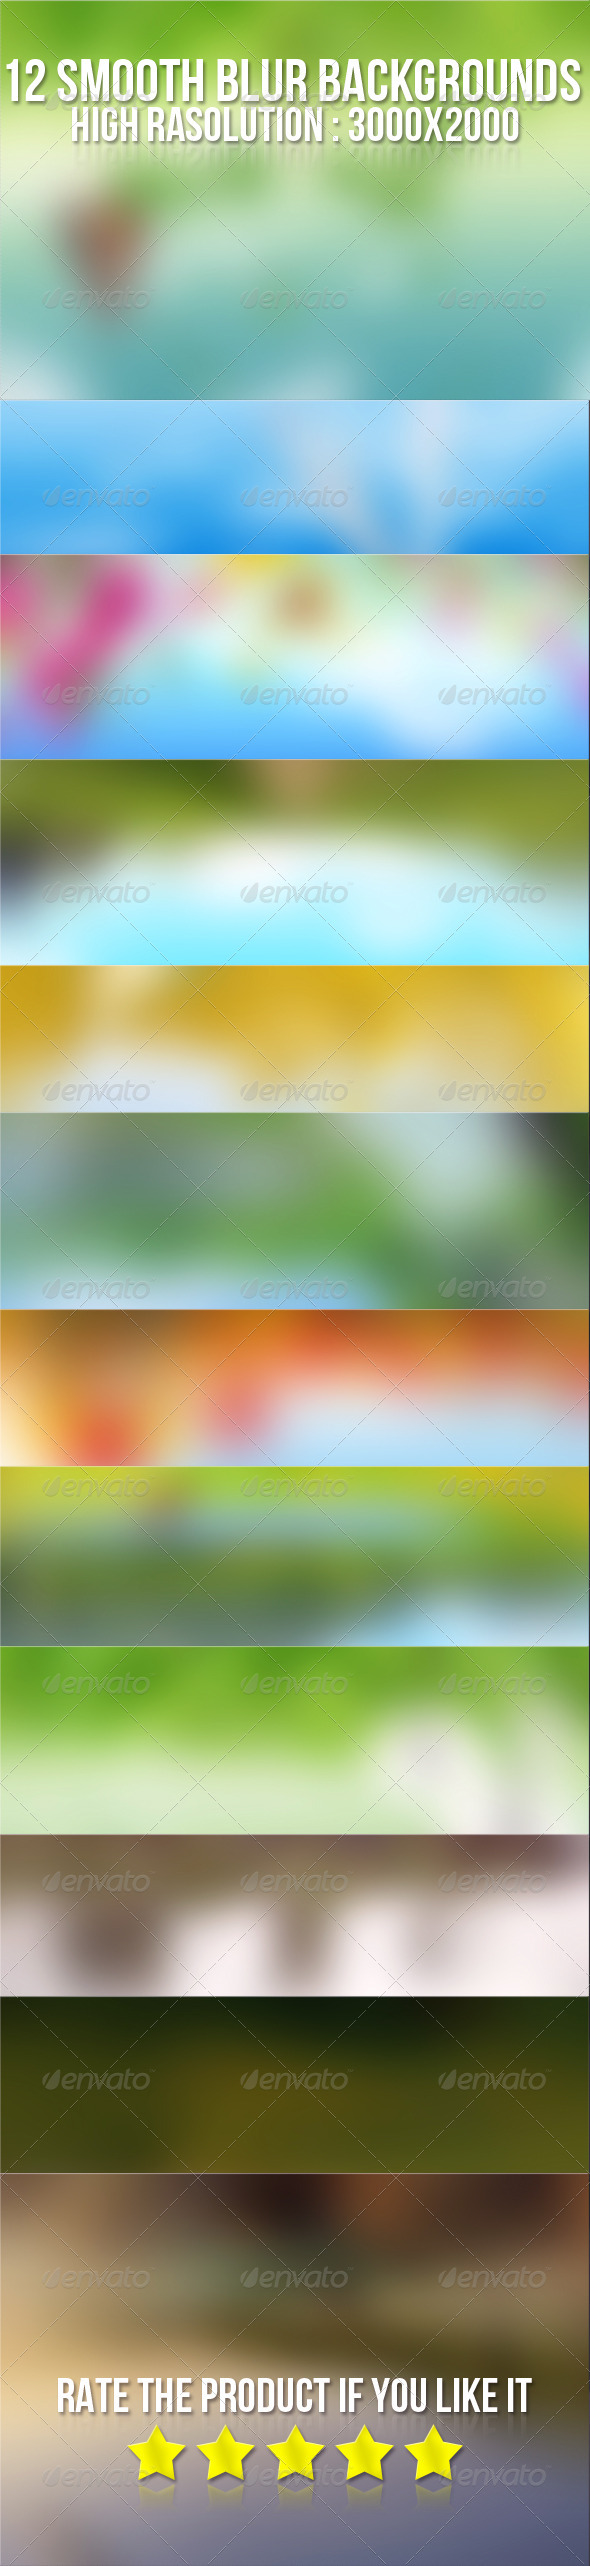 GraphicRiver 12 Smooth Blur Backgrounds 5295747